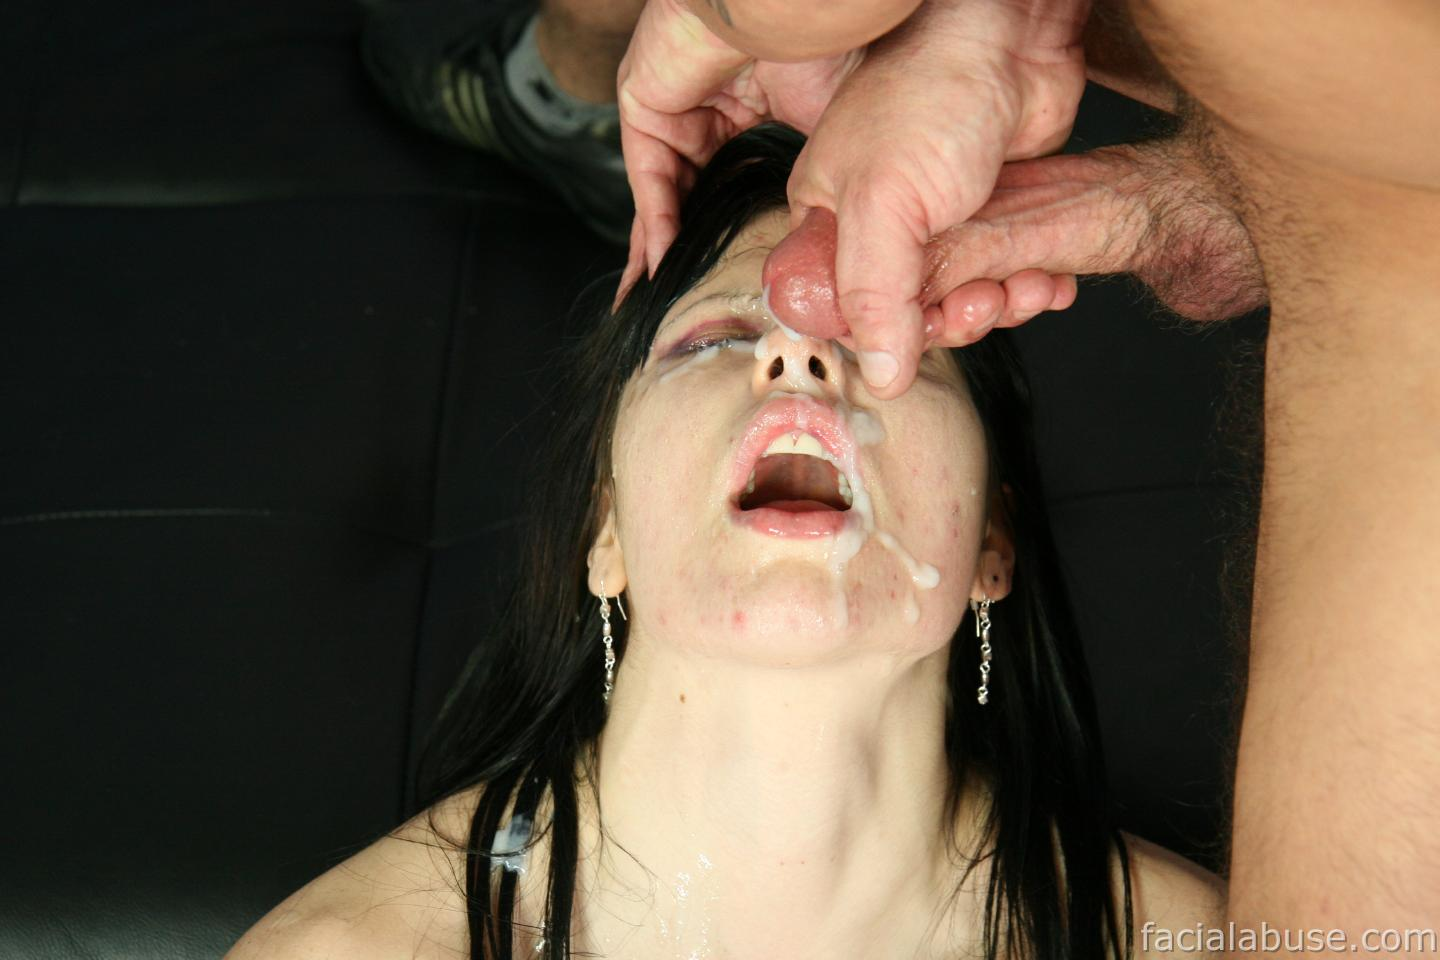 Lesbian sex phography oral